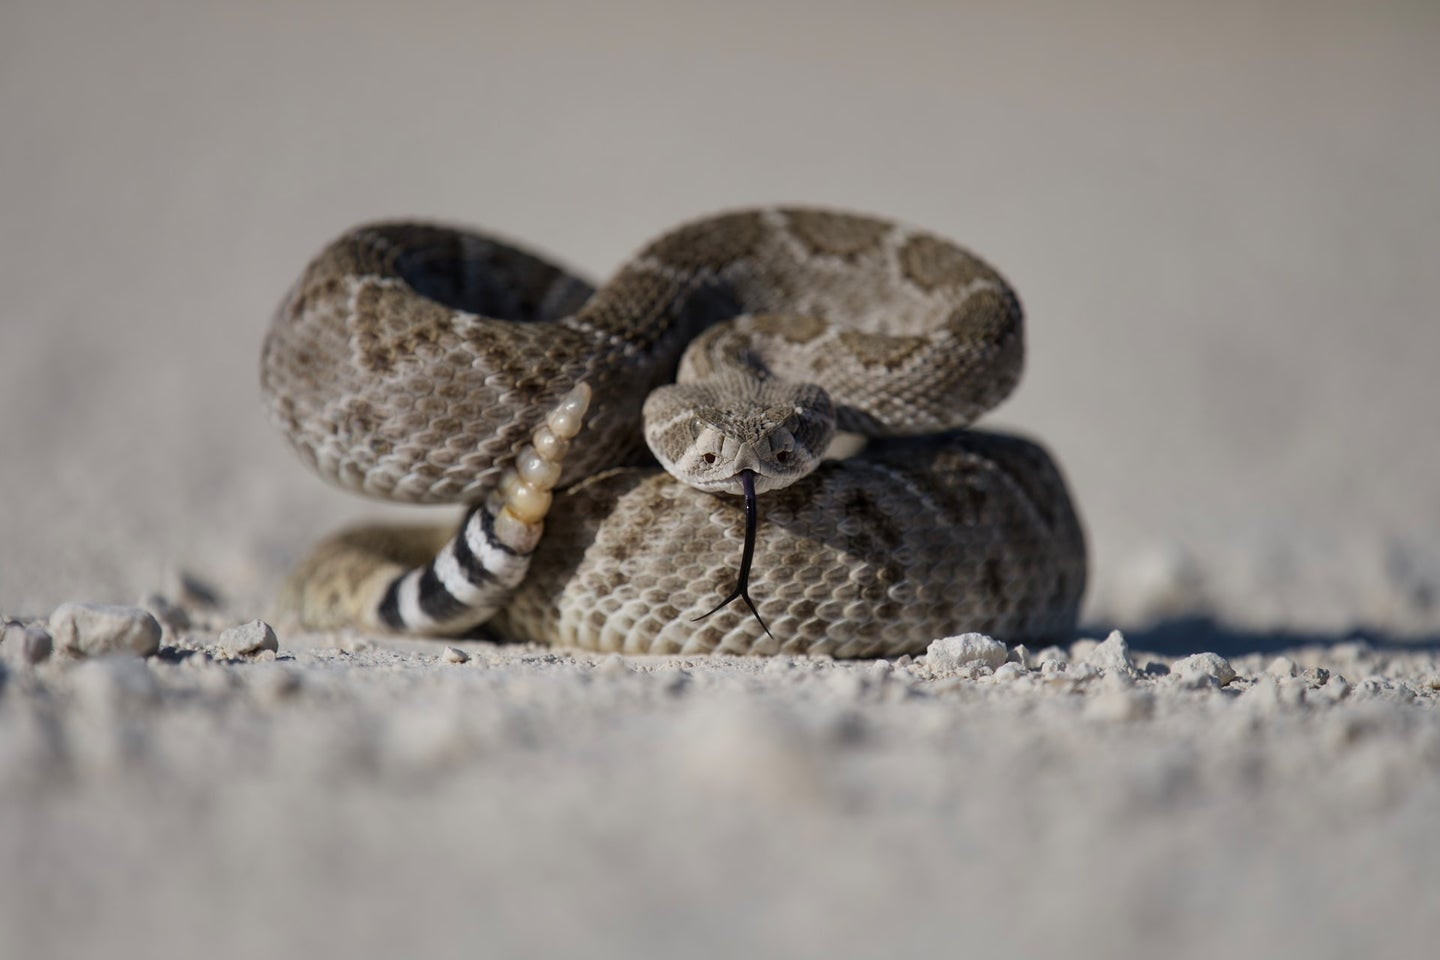 Rattlesnake flicking its tail on the sand